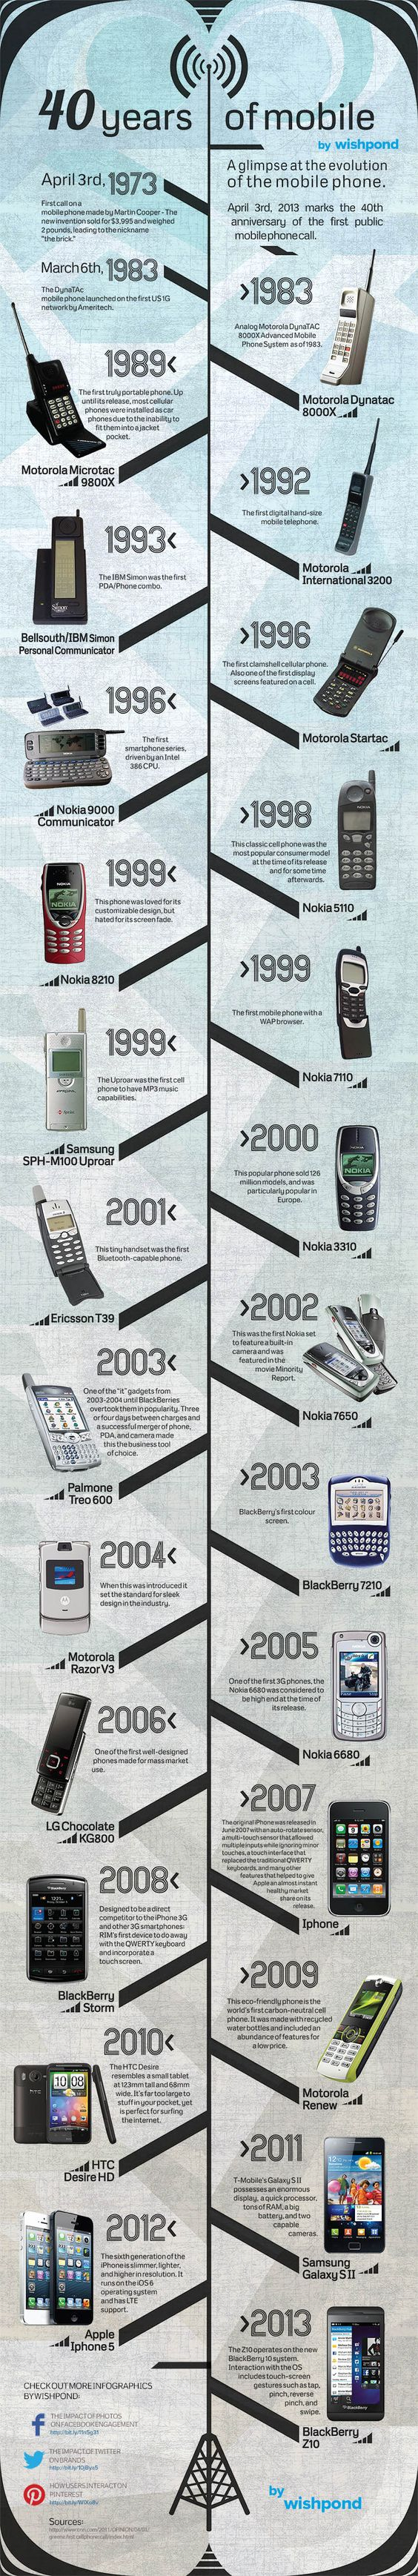 storyofmobilephones